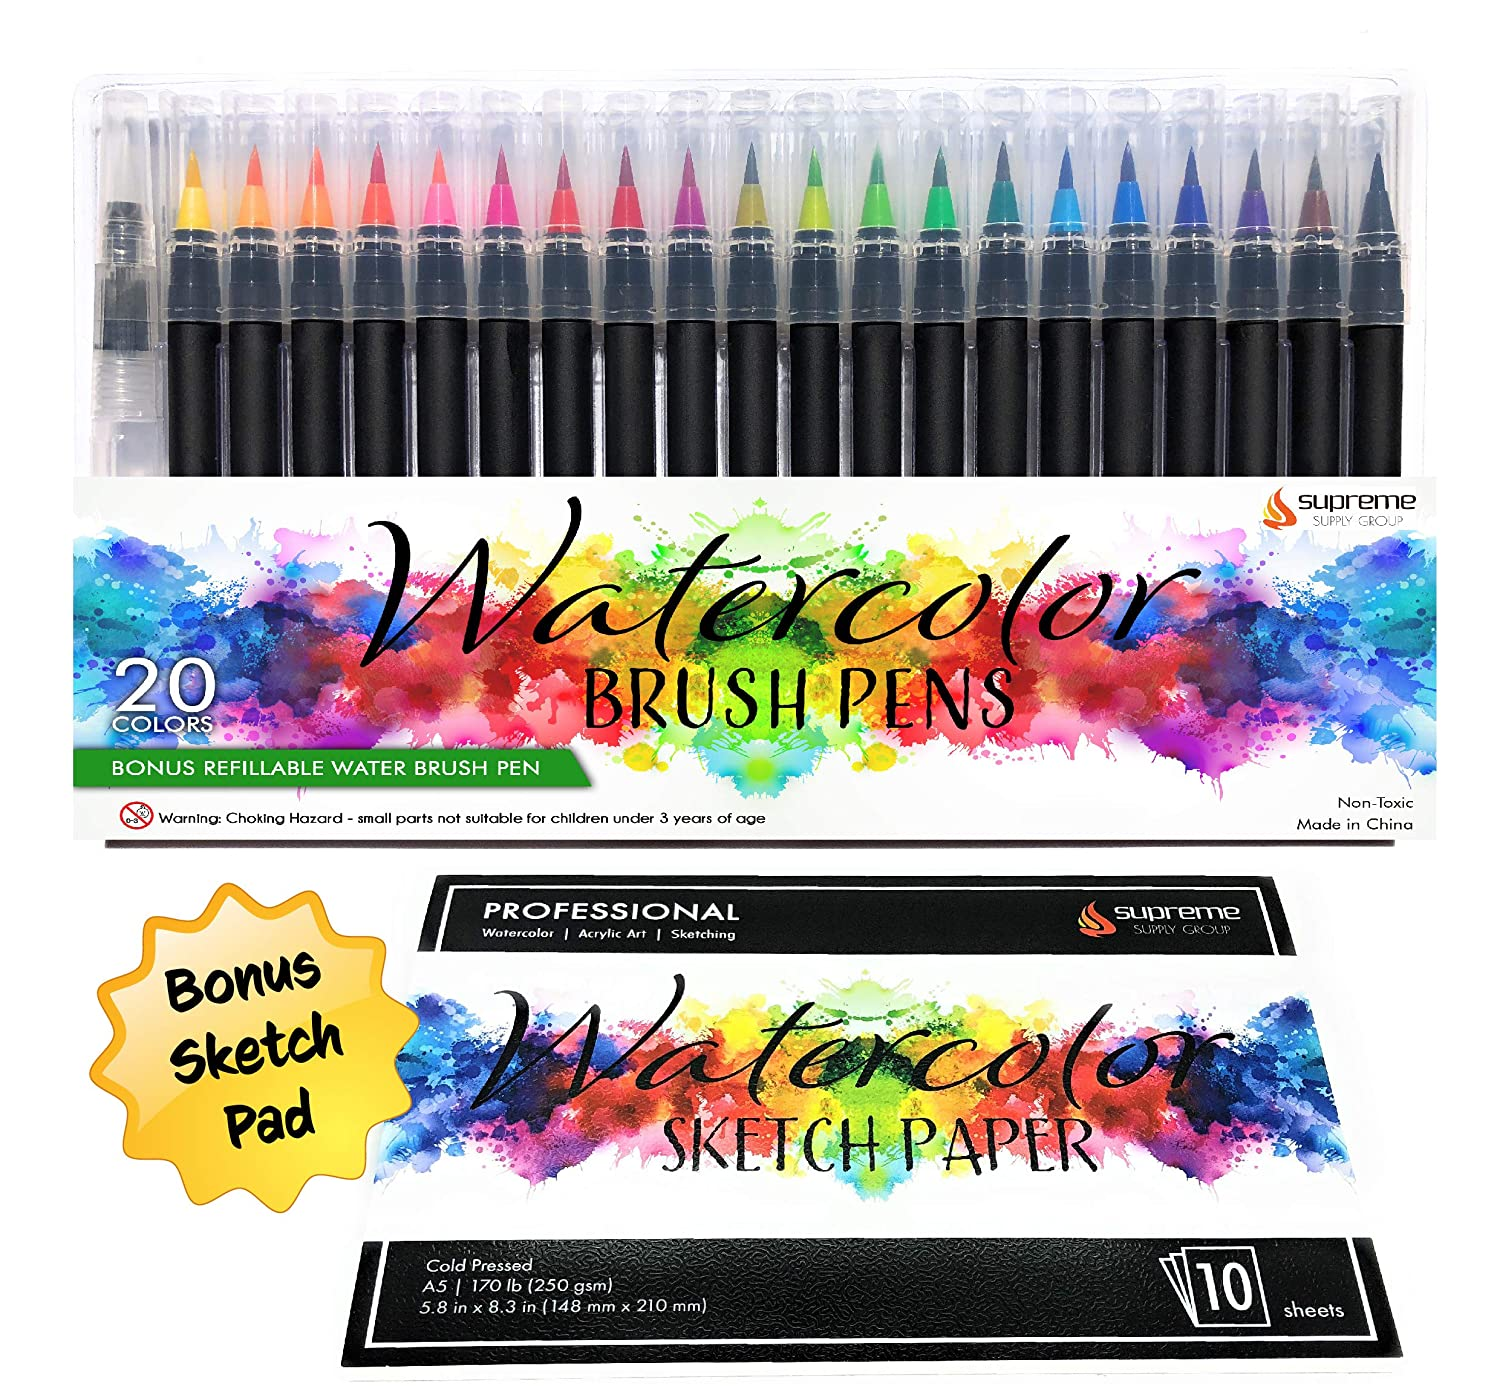 Watercolor Brush Pens Set, 20 Color Markers + 1 Bonus Refillable Water Brush Pen, Soft Tip for Art, Drawing, Coloring Page, Calligraphy, Sketching and Paint Effects, Portable Non-Toxic, Water Based Supreme Supply Group